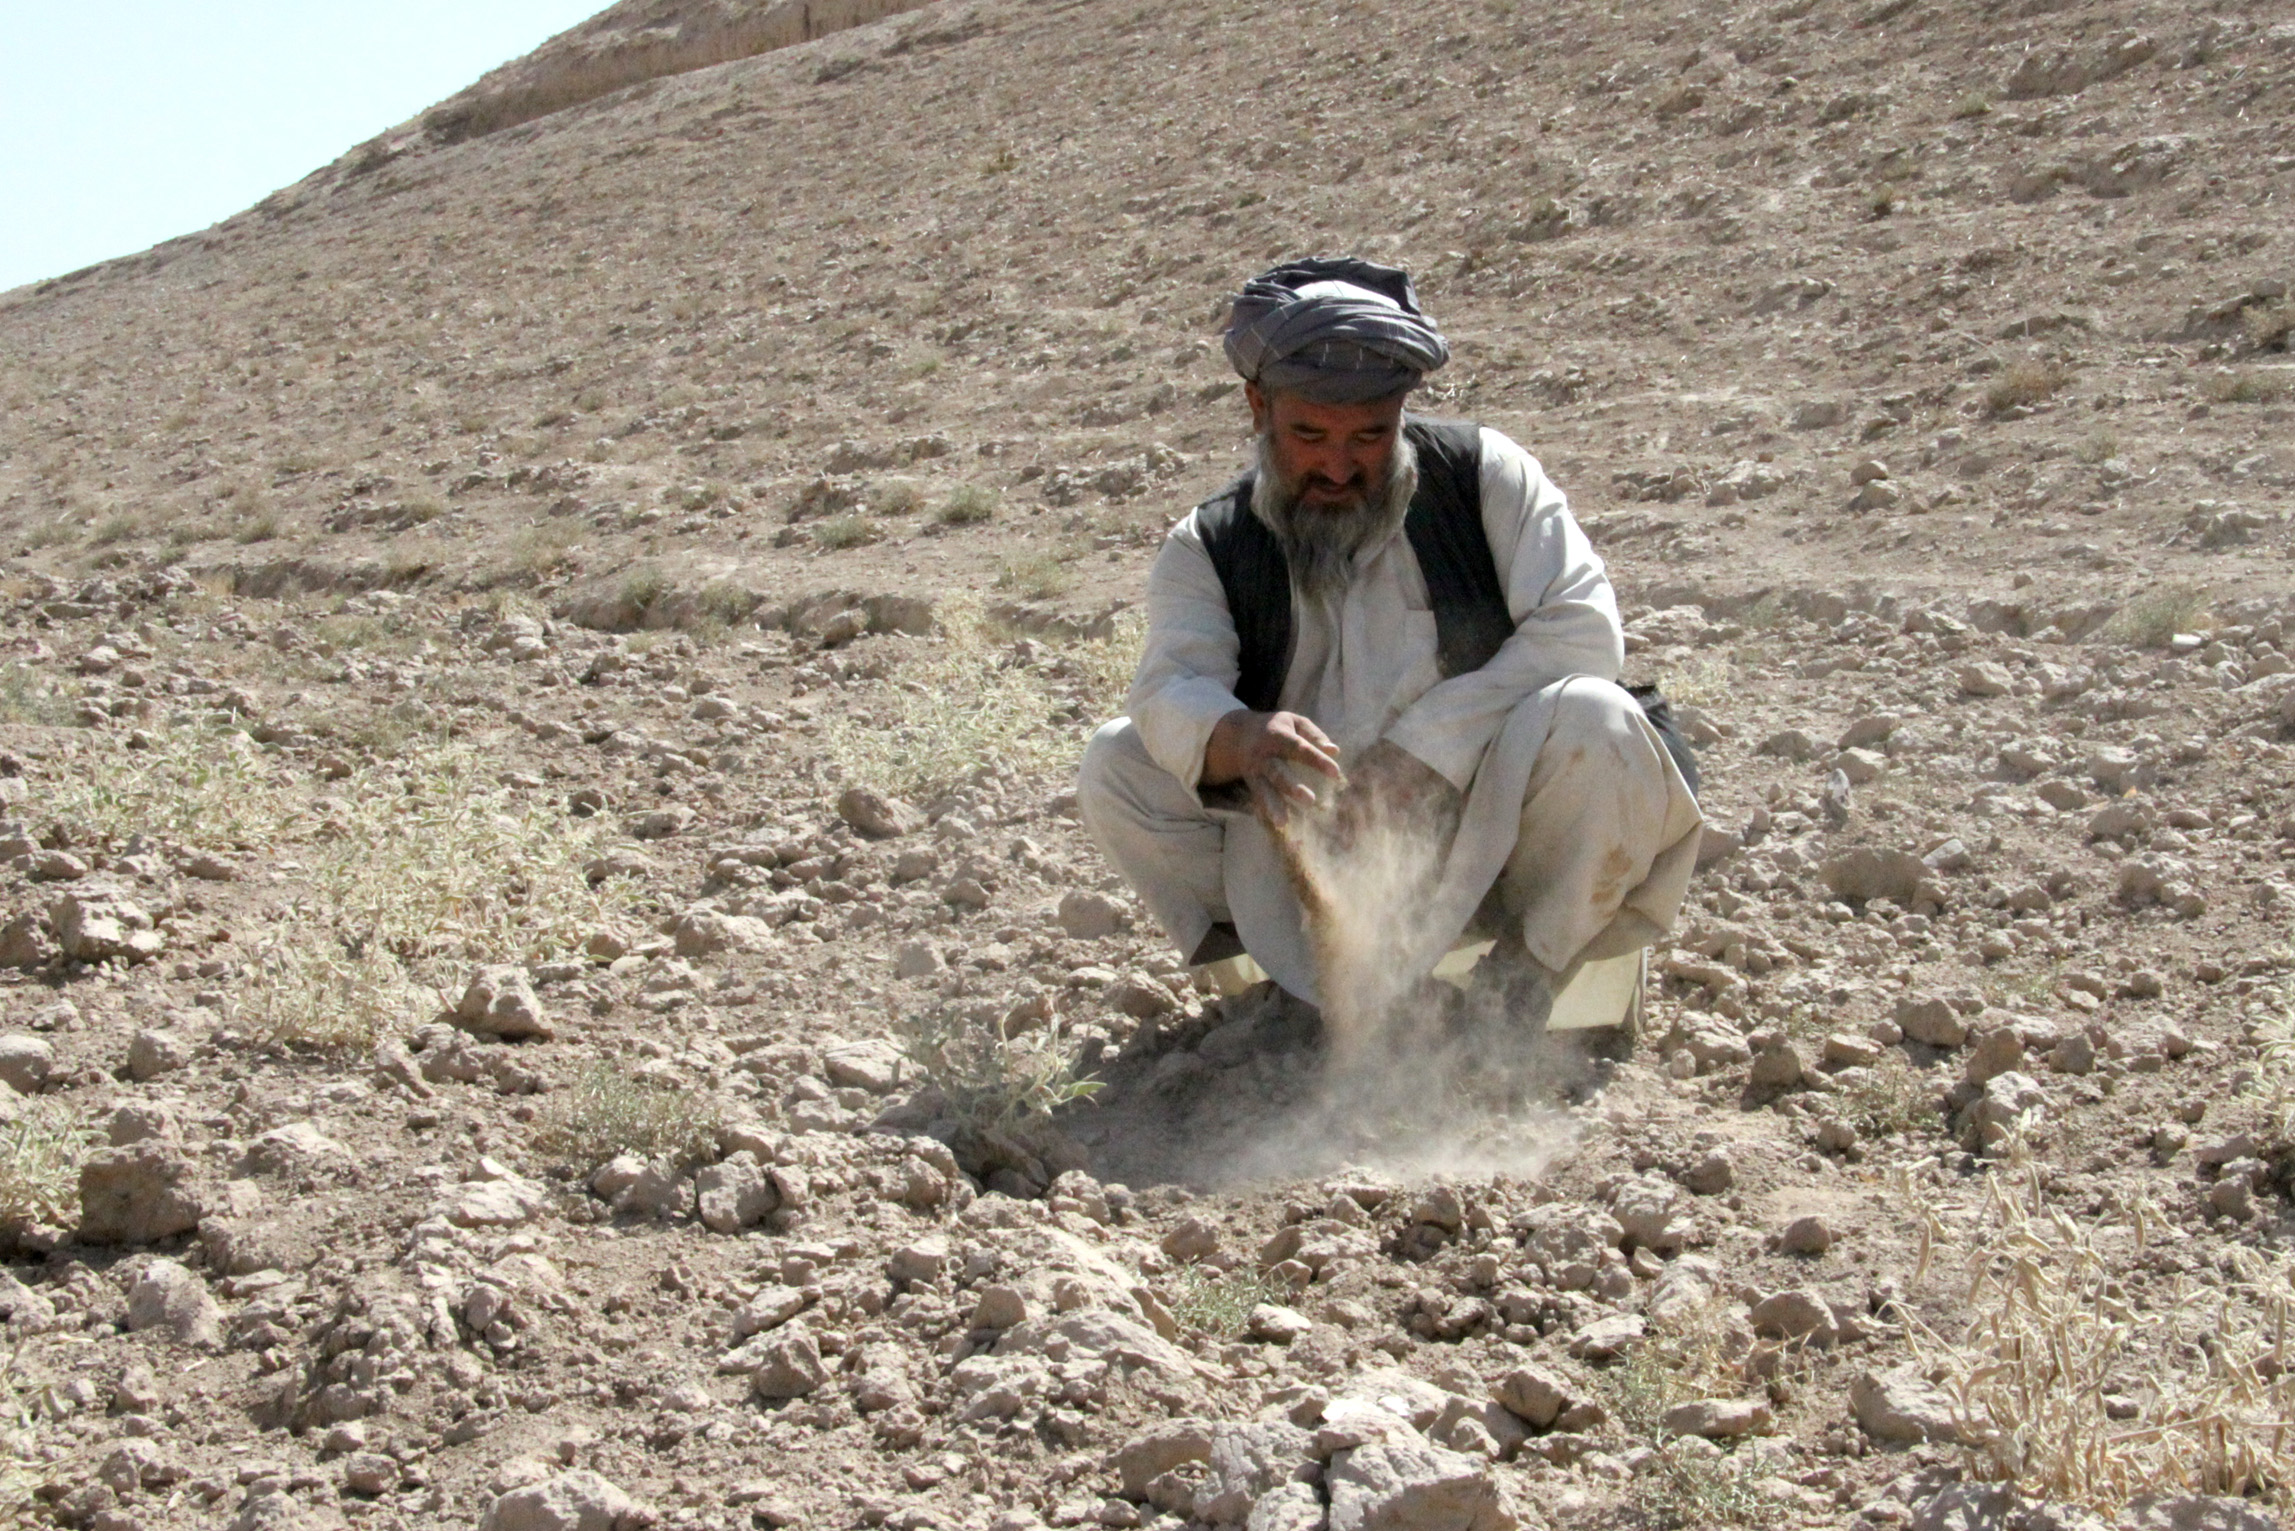 Mohammad Israyel on the hill on which his farm was located in Khuram Sar Bagh, Afghanistan